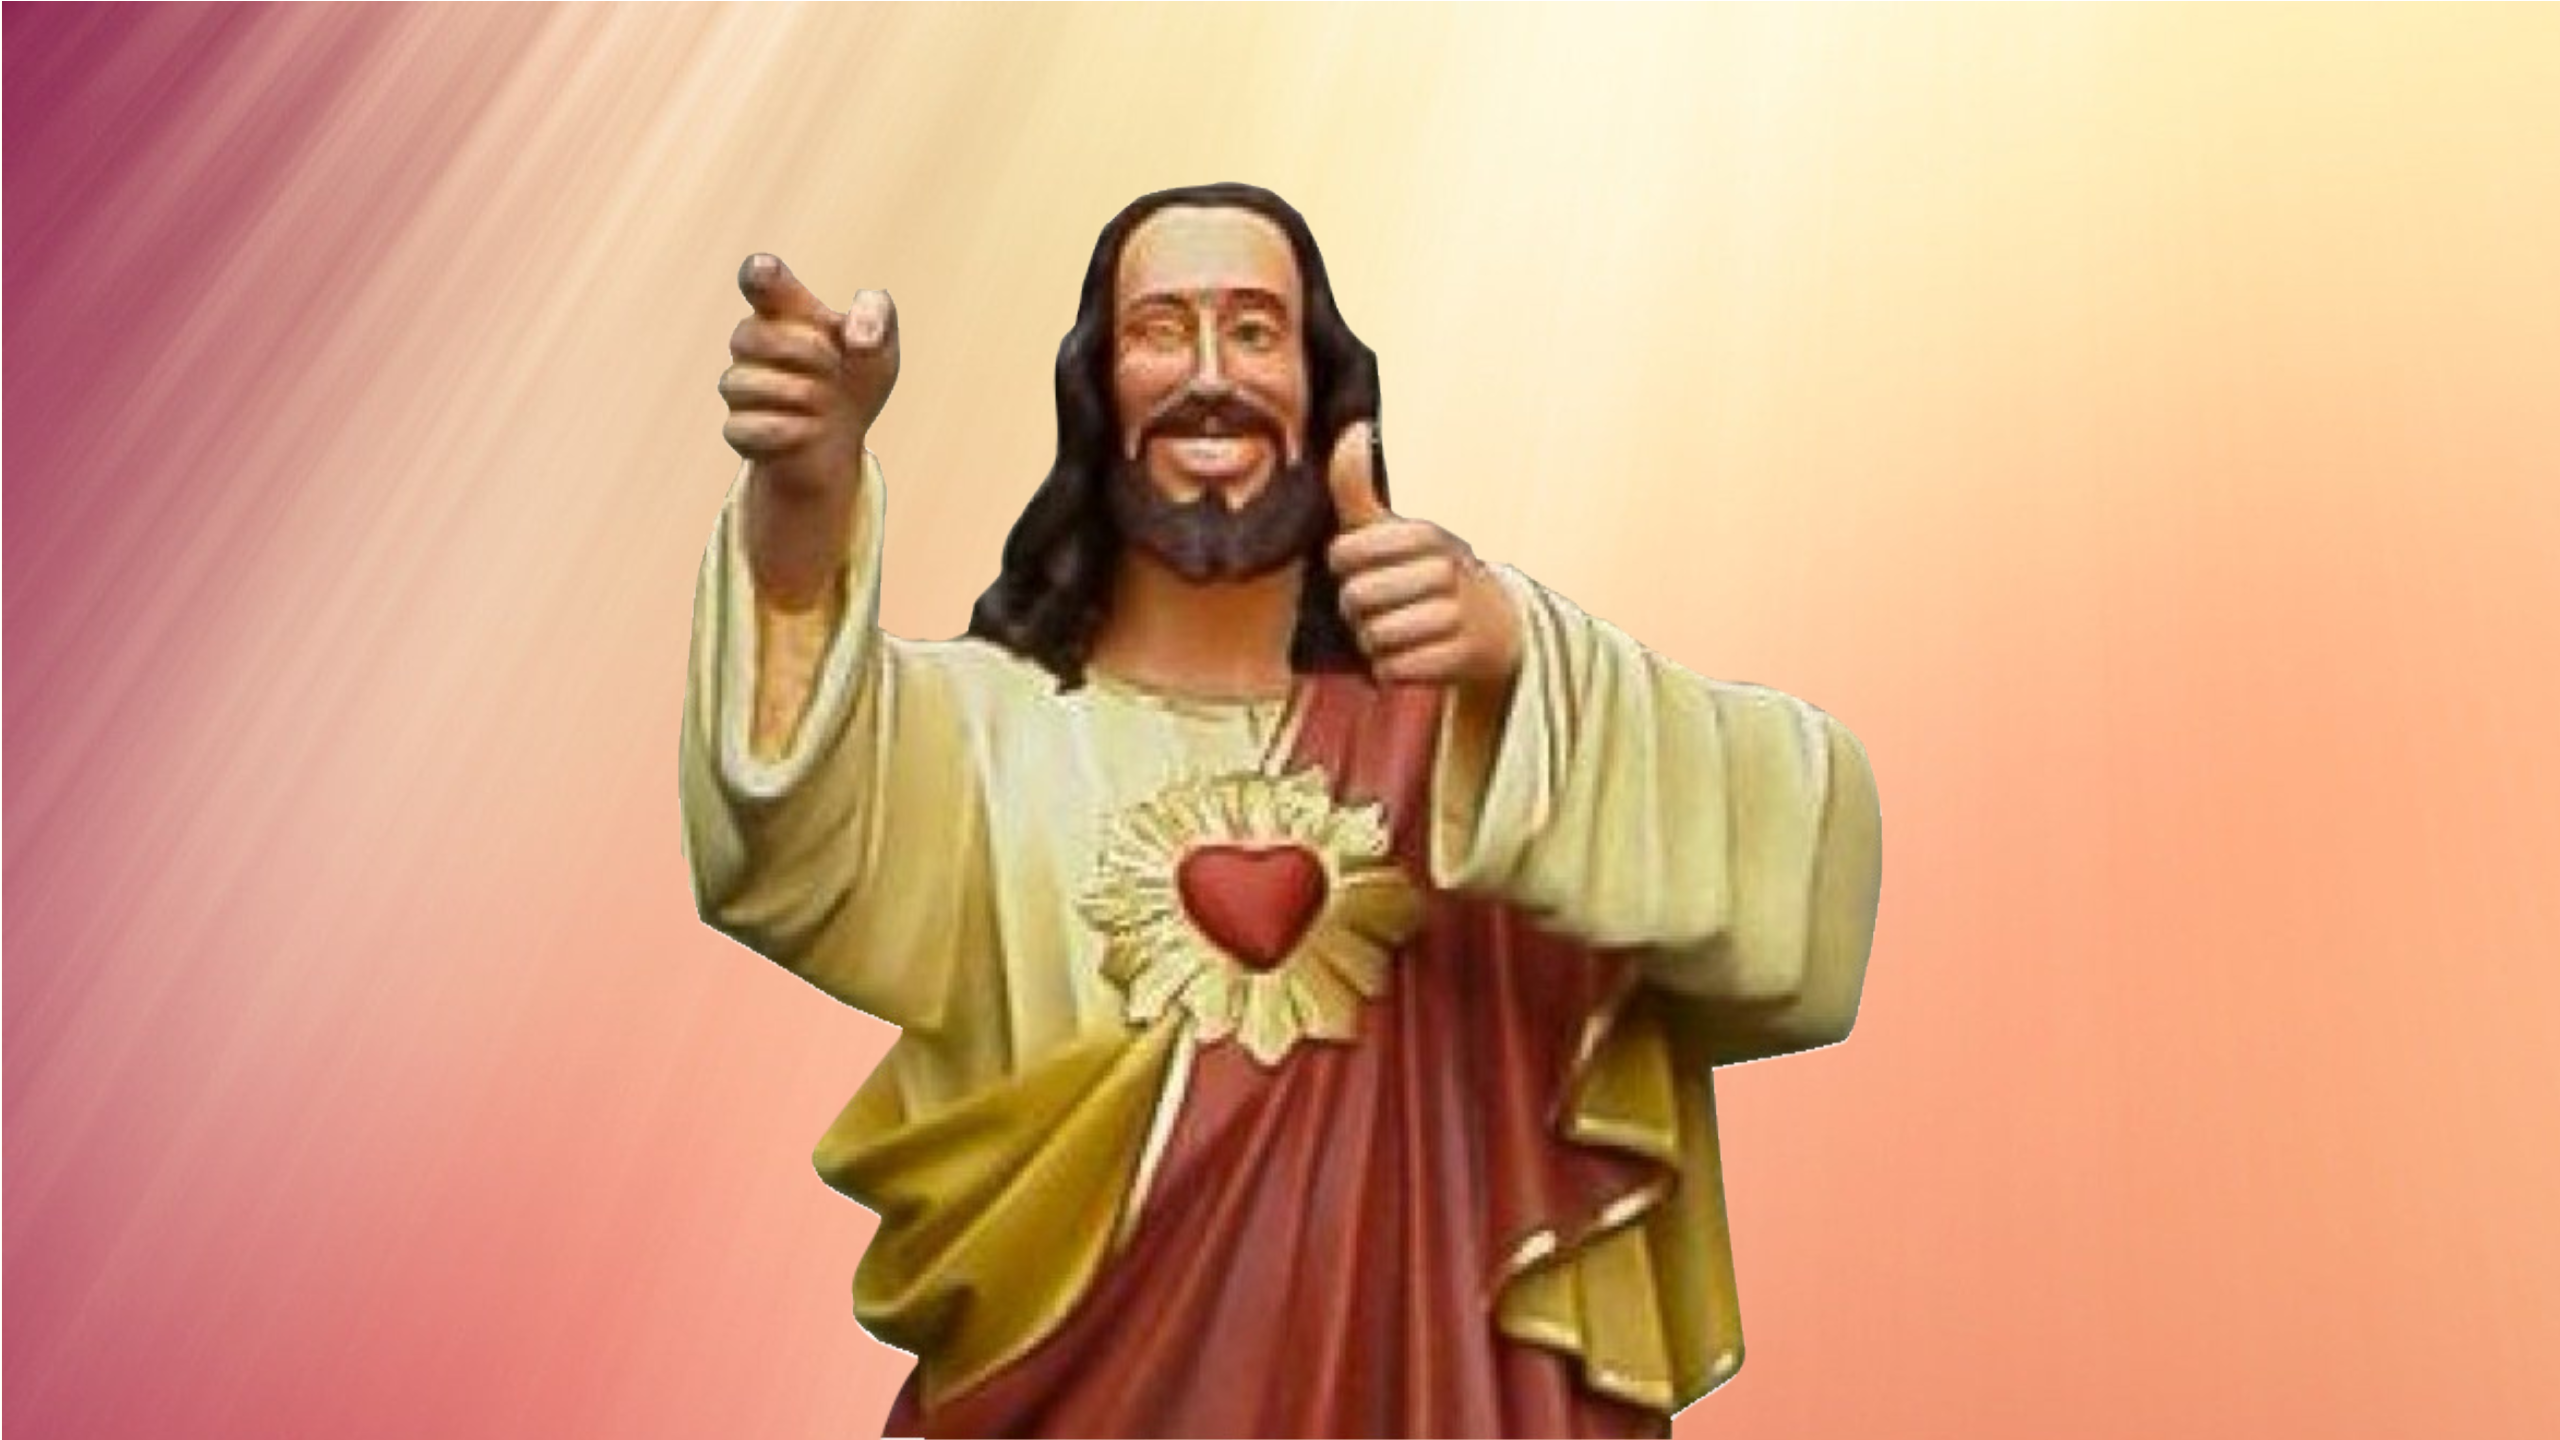 Want to be happy? Be like Jesus!